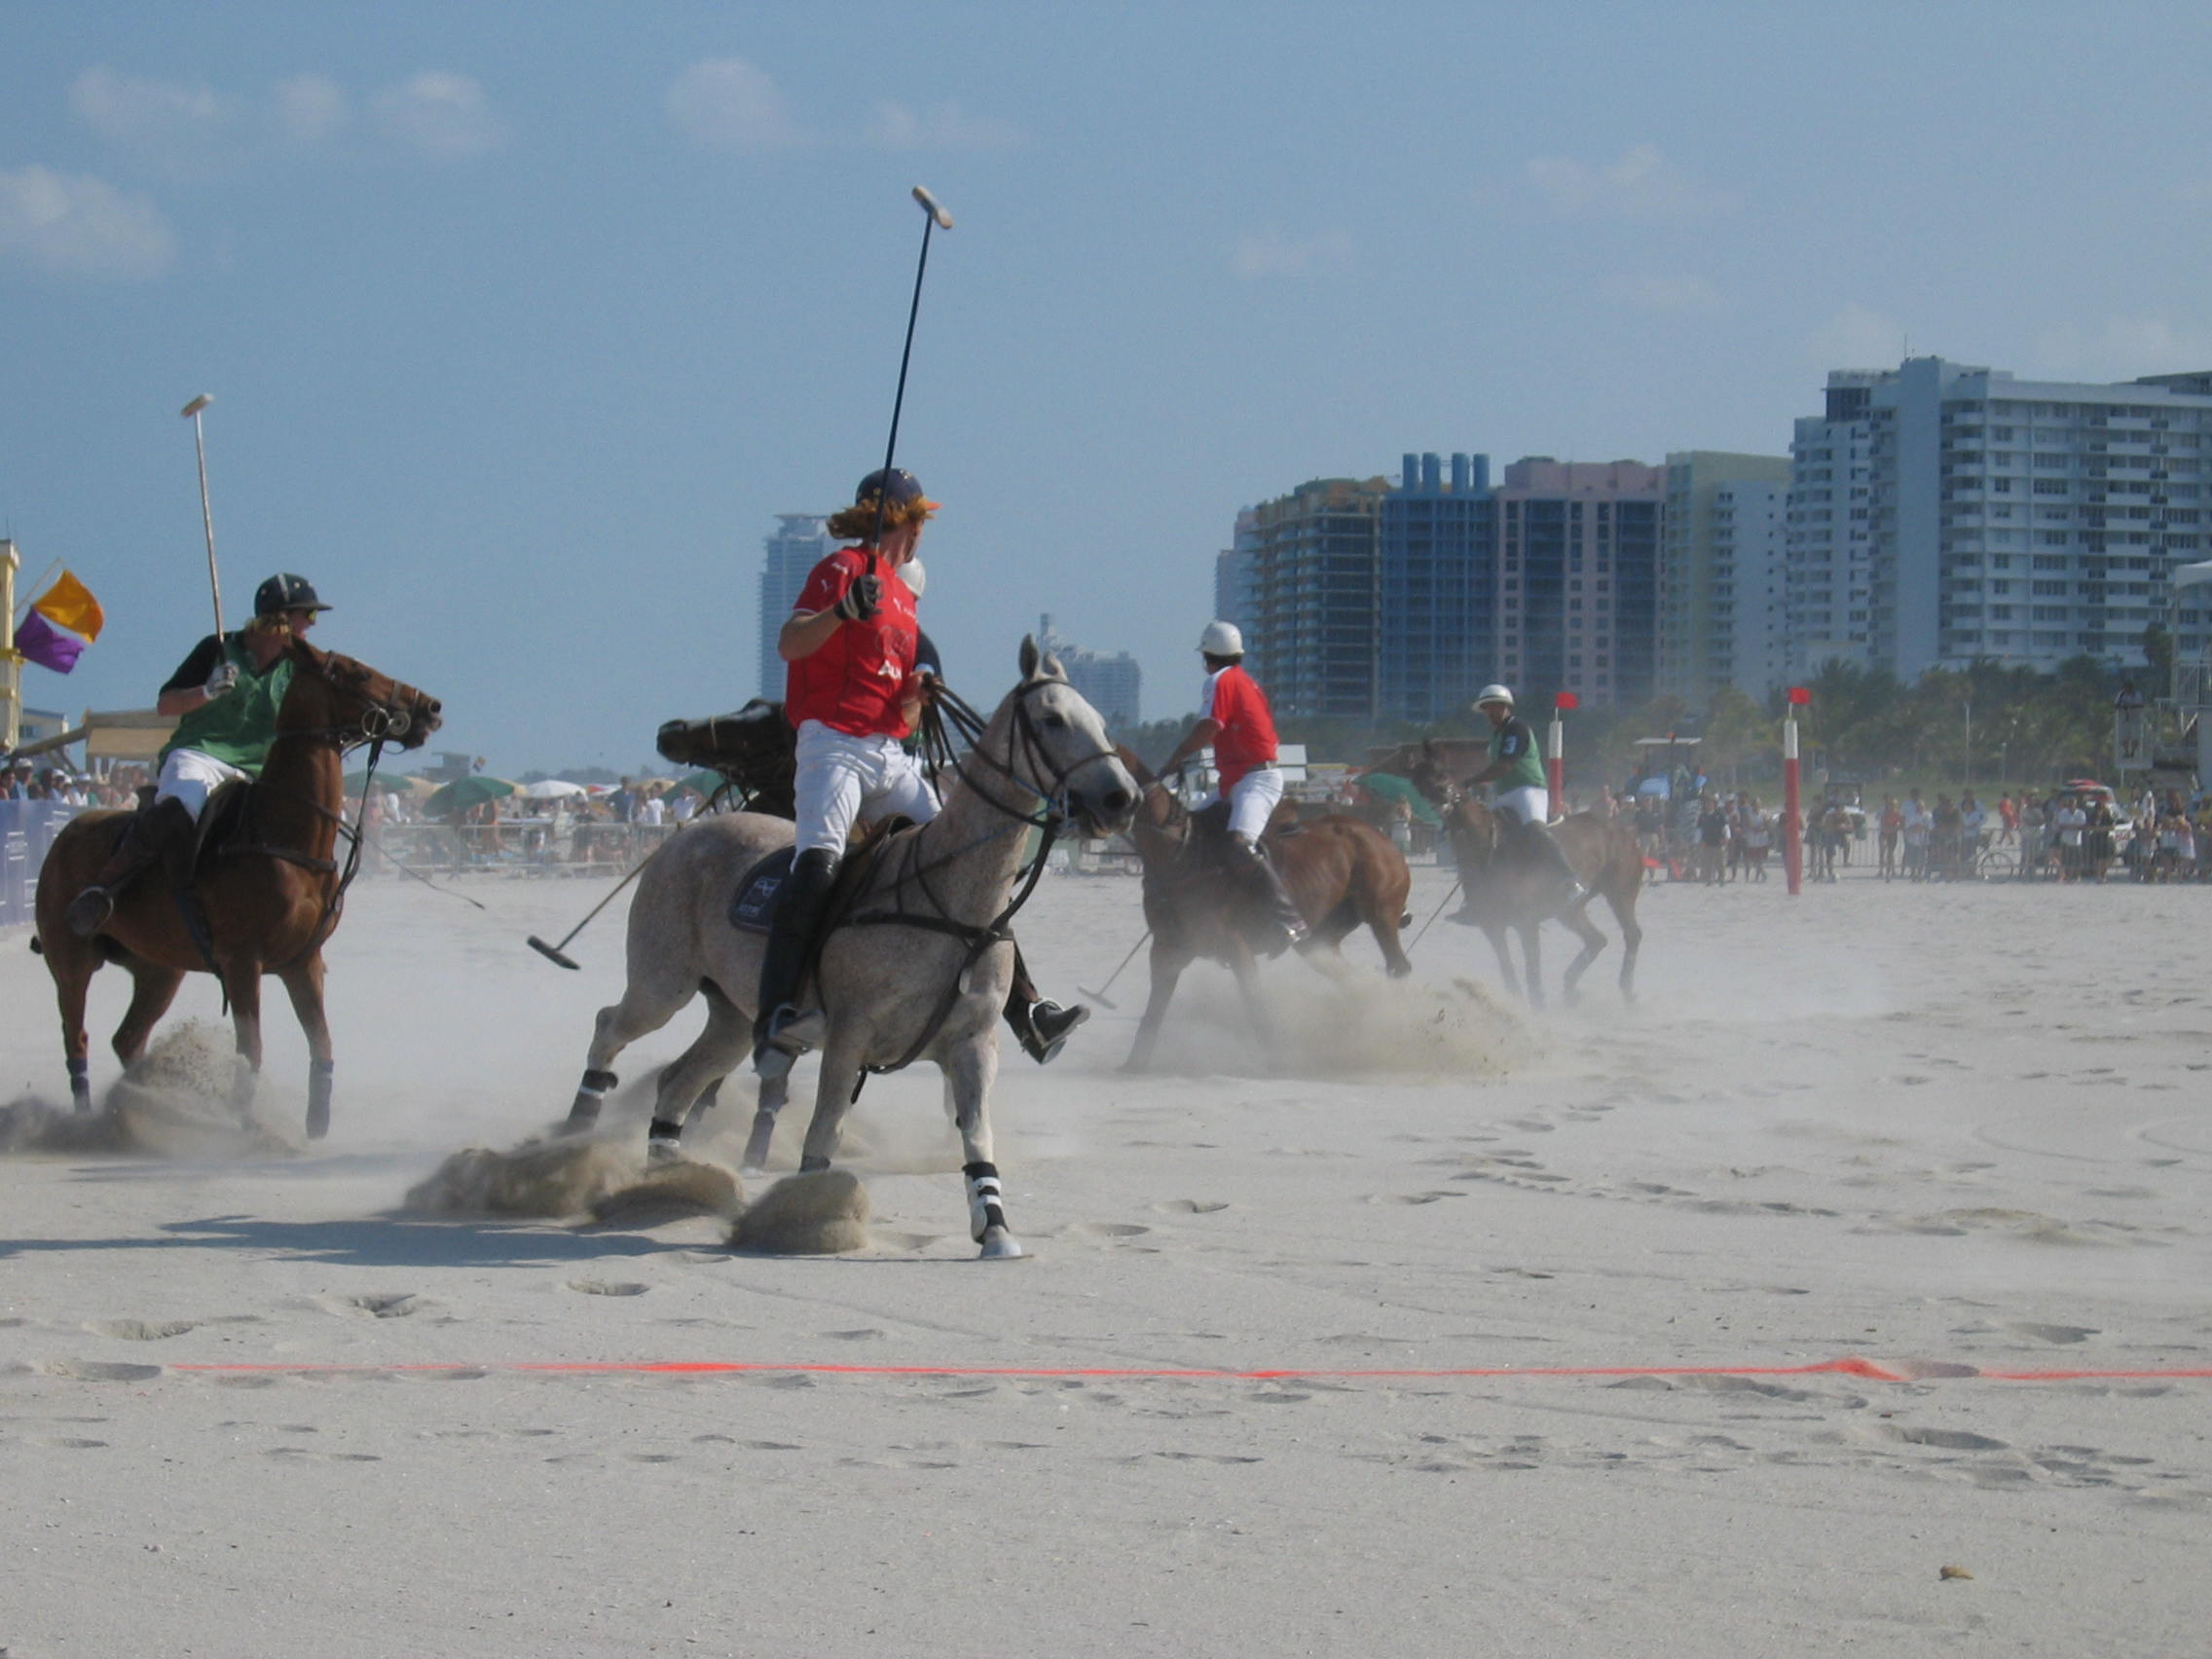 Polo Ponies on Miami Beach by Debra Cortese